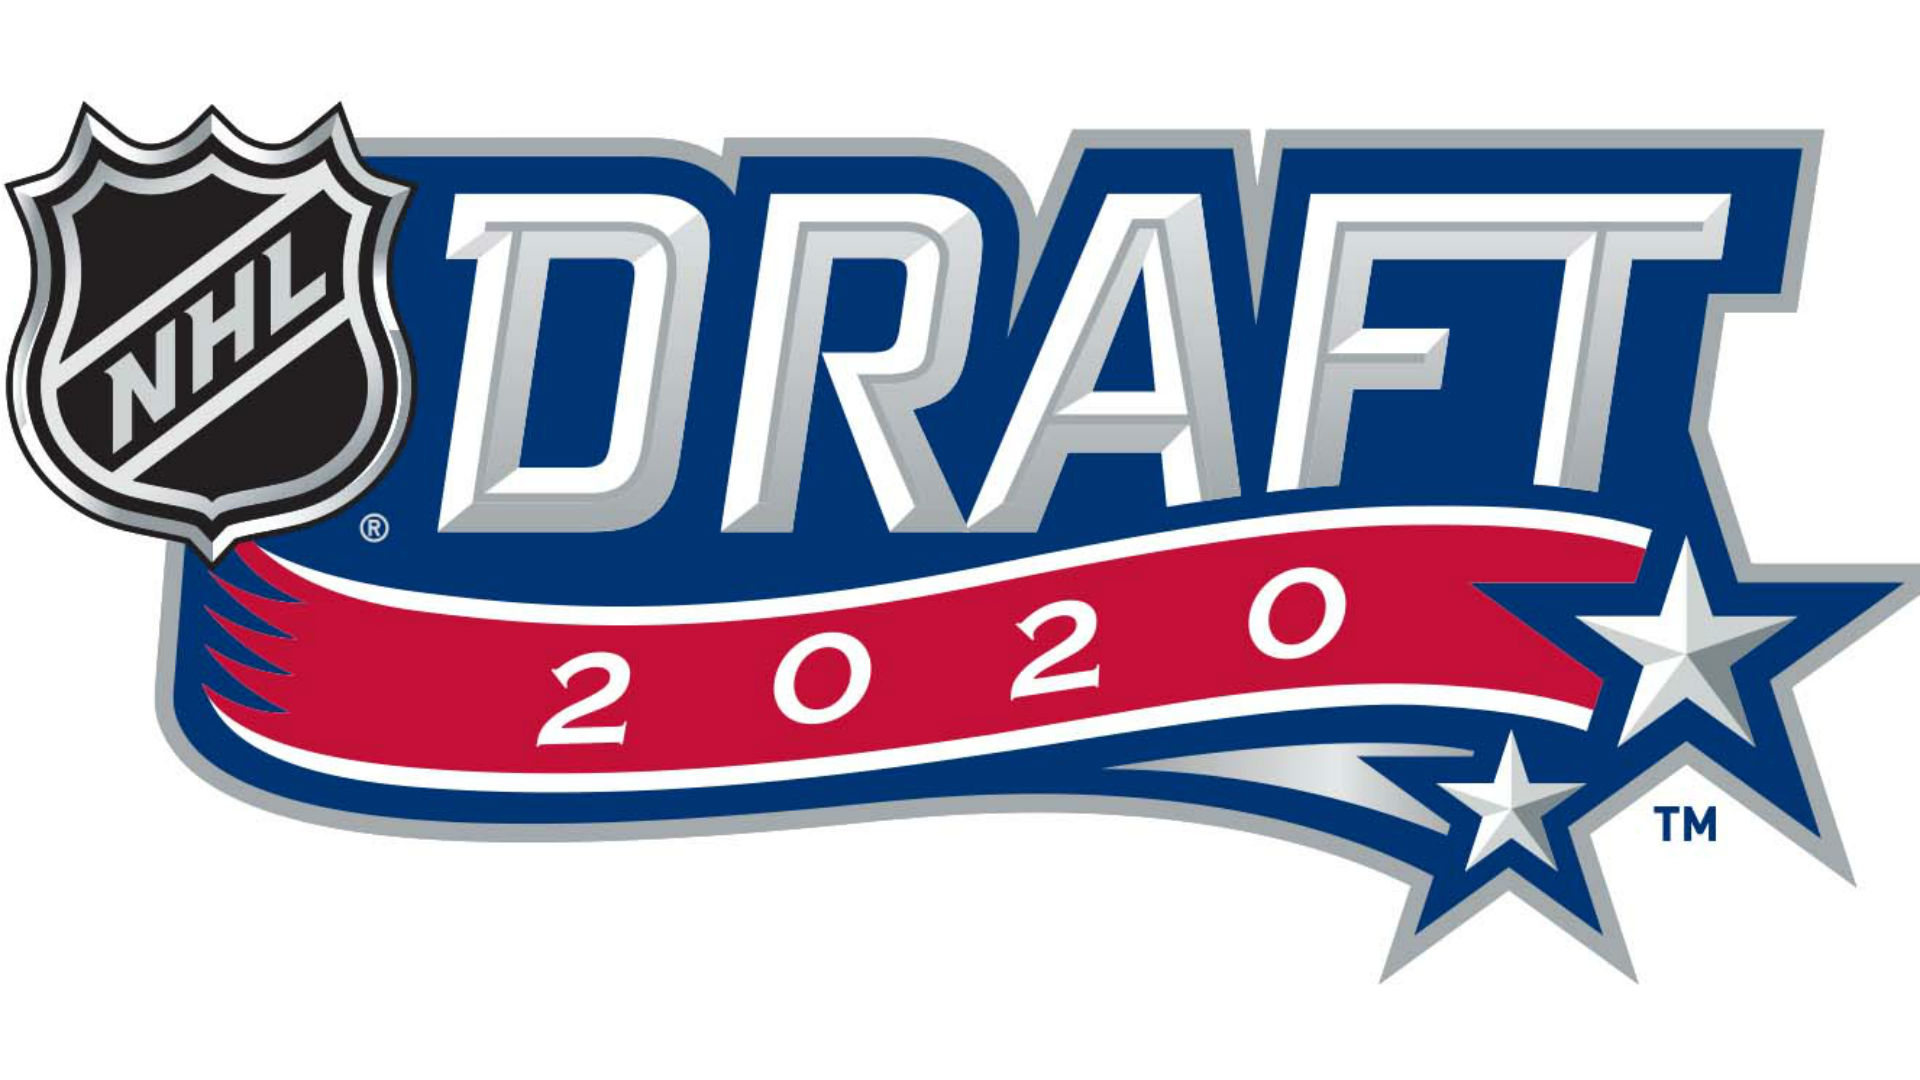 NHL Draft order by round 2020: Complete list of all 217 picks for Rounds 1-7